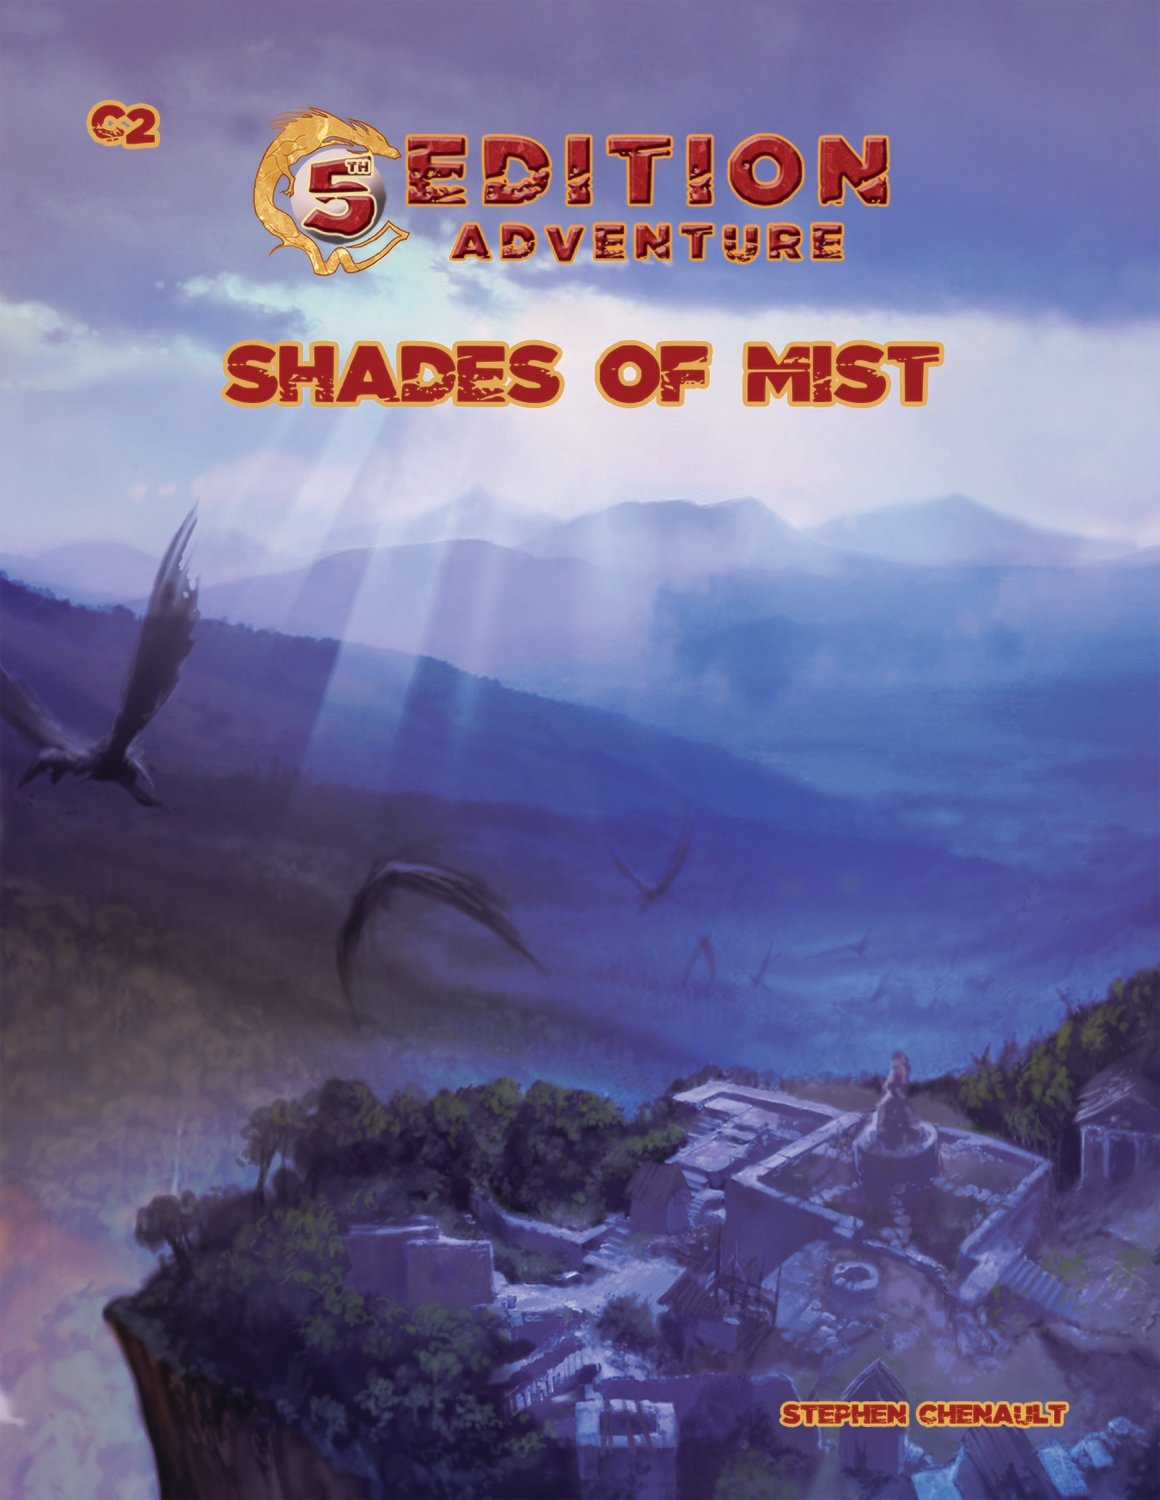 5th Edition Adventures: C2 - Shades of Mist -  Troll Lord Games